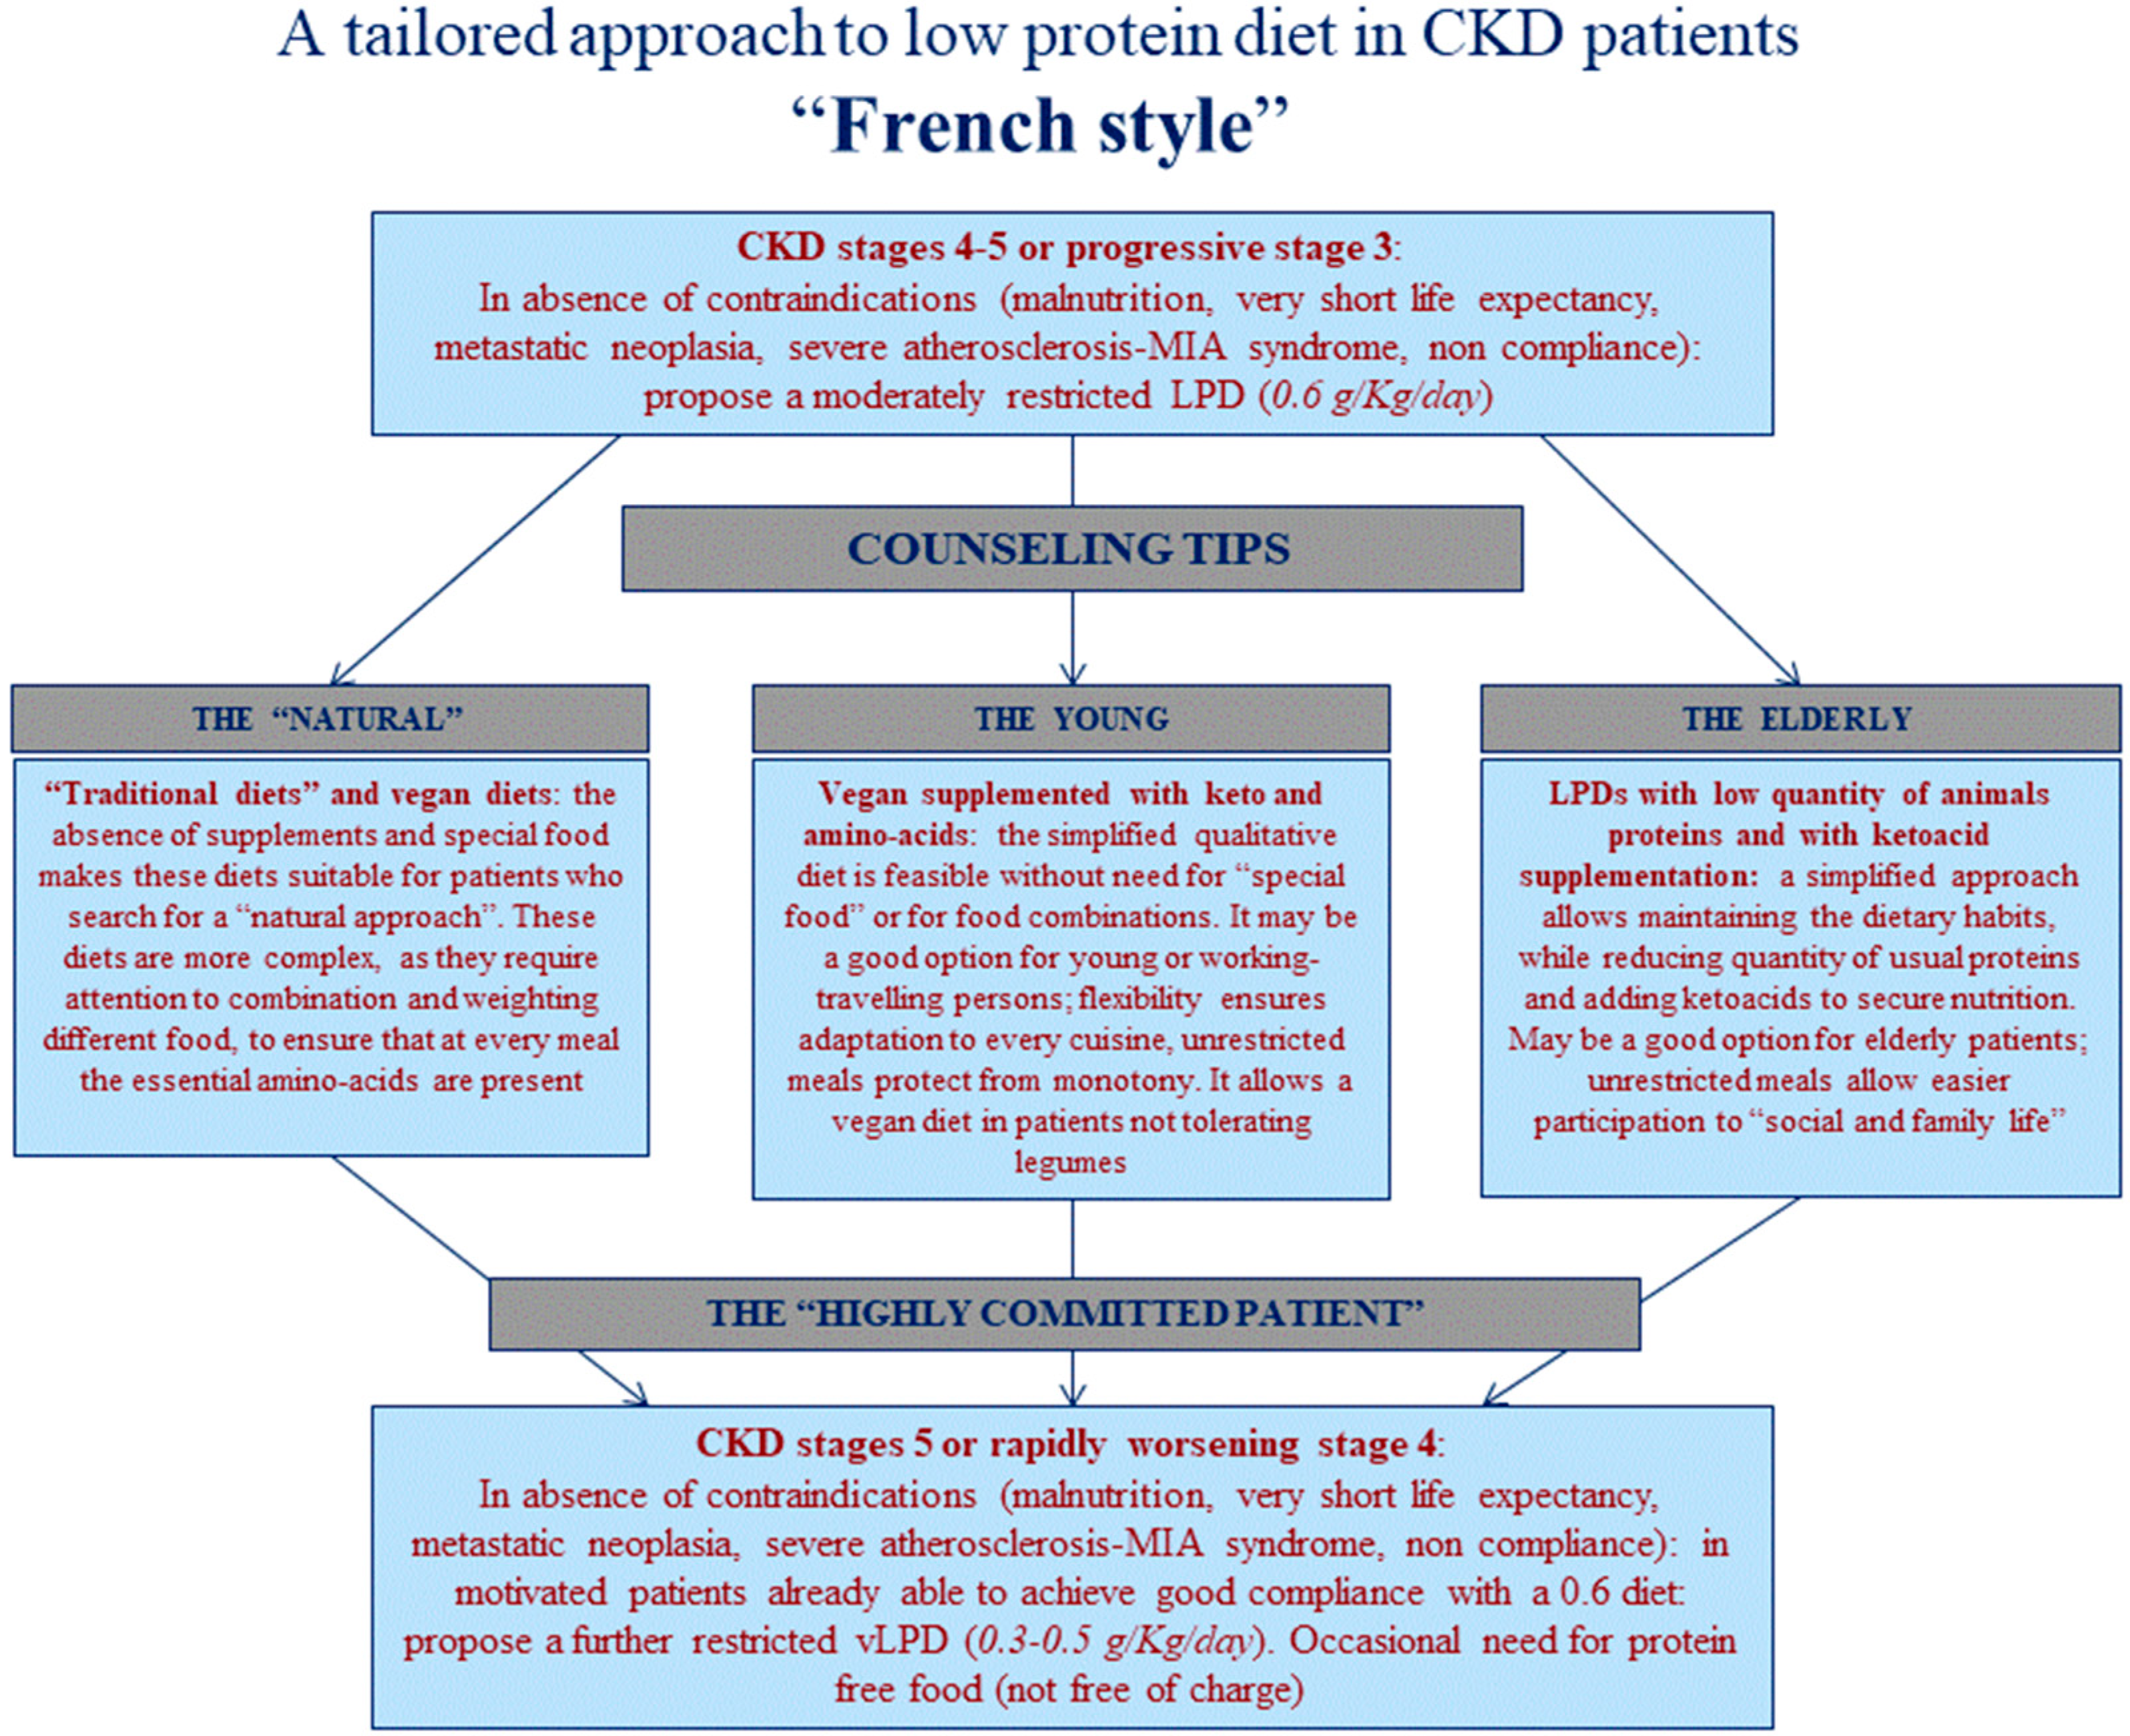 Nutrients Free Full Text Moderate Protein Restriction In Advanced Ckd A Feasible Option In An Elderly High Comorbidity Population A Stepwise Multiple Choice System Approach Html